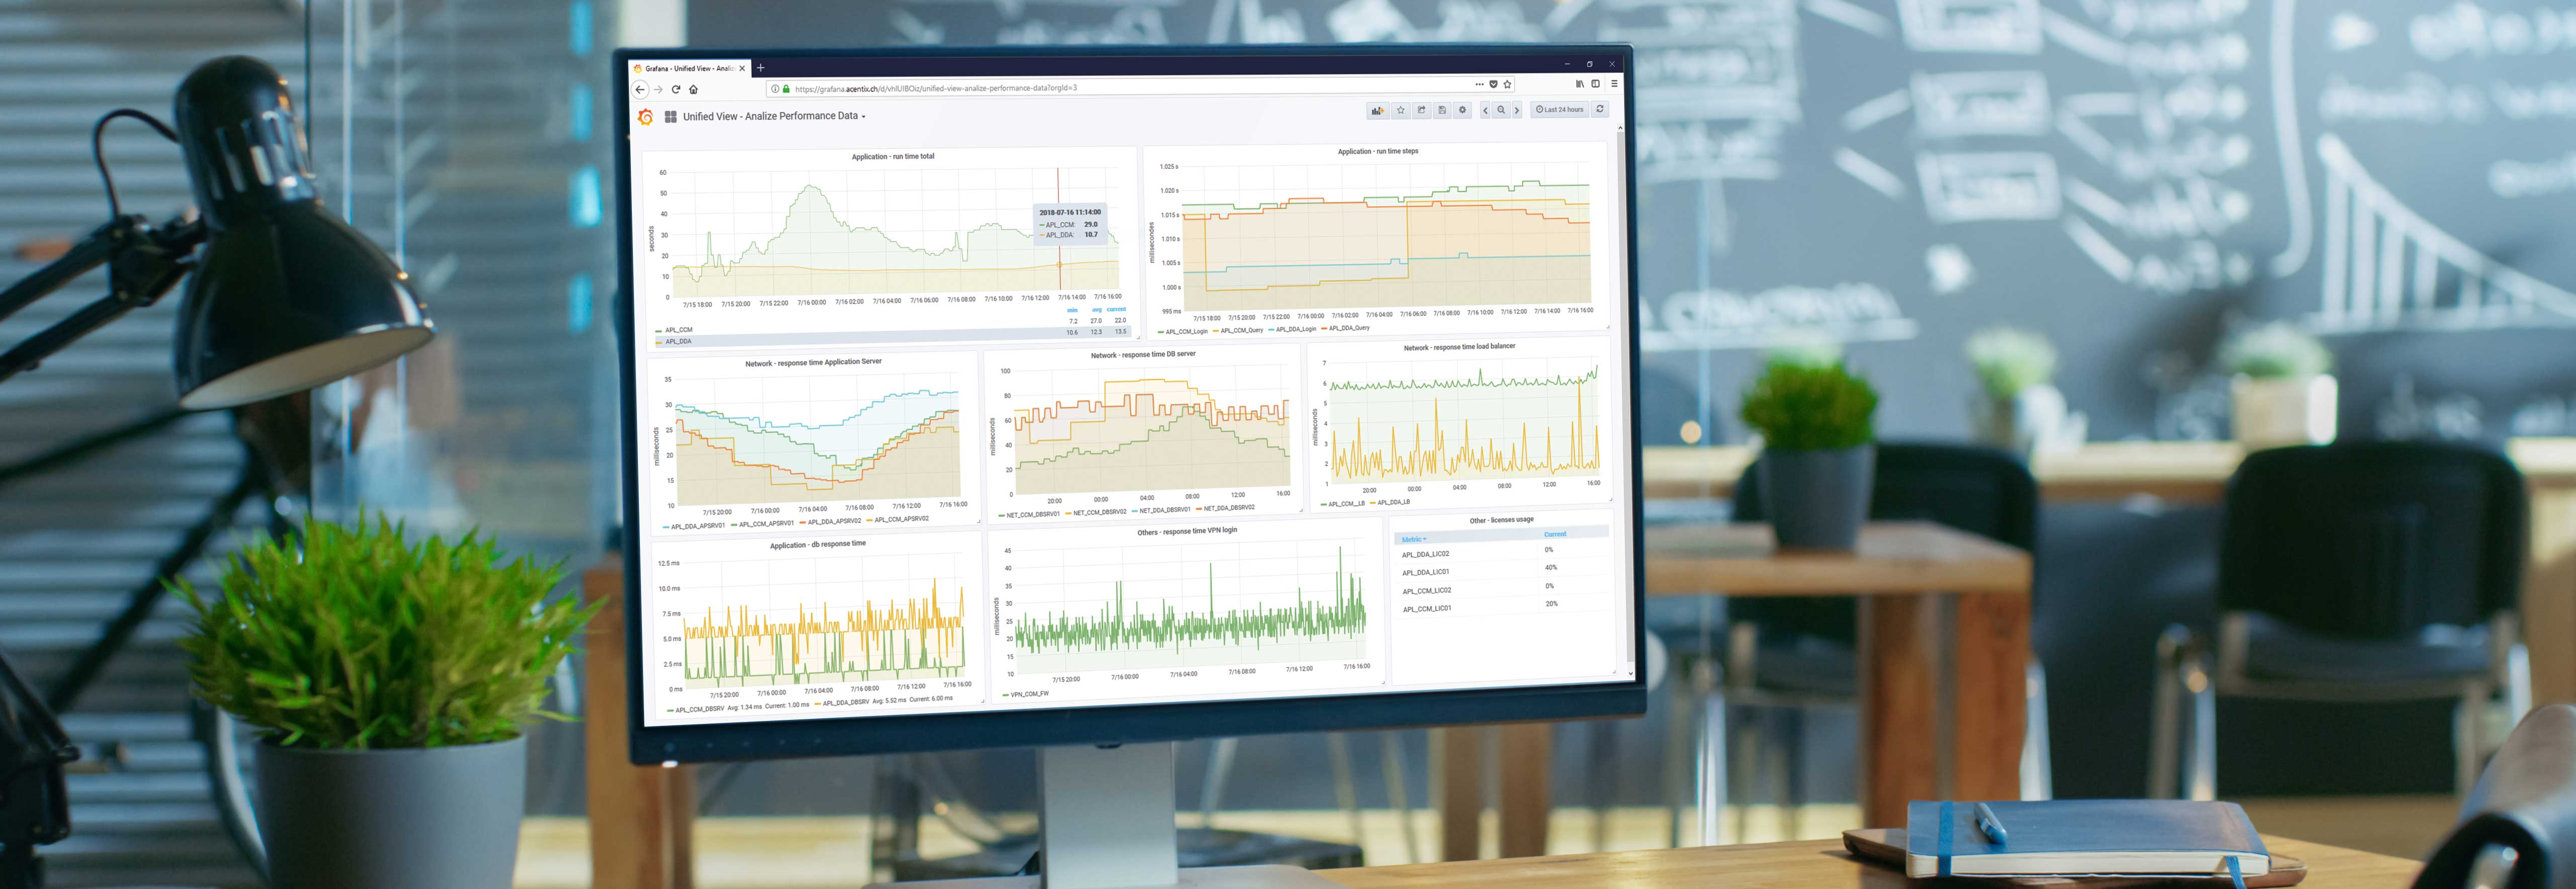 Screen on a desk in an office showing different graphs in Unified View in a Web-Dashboard